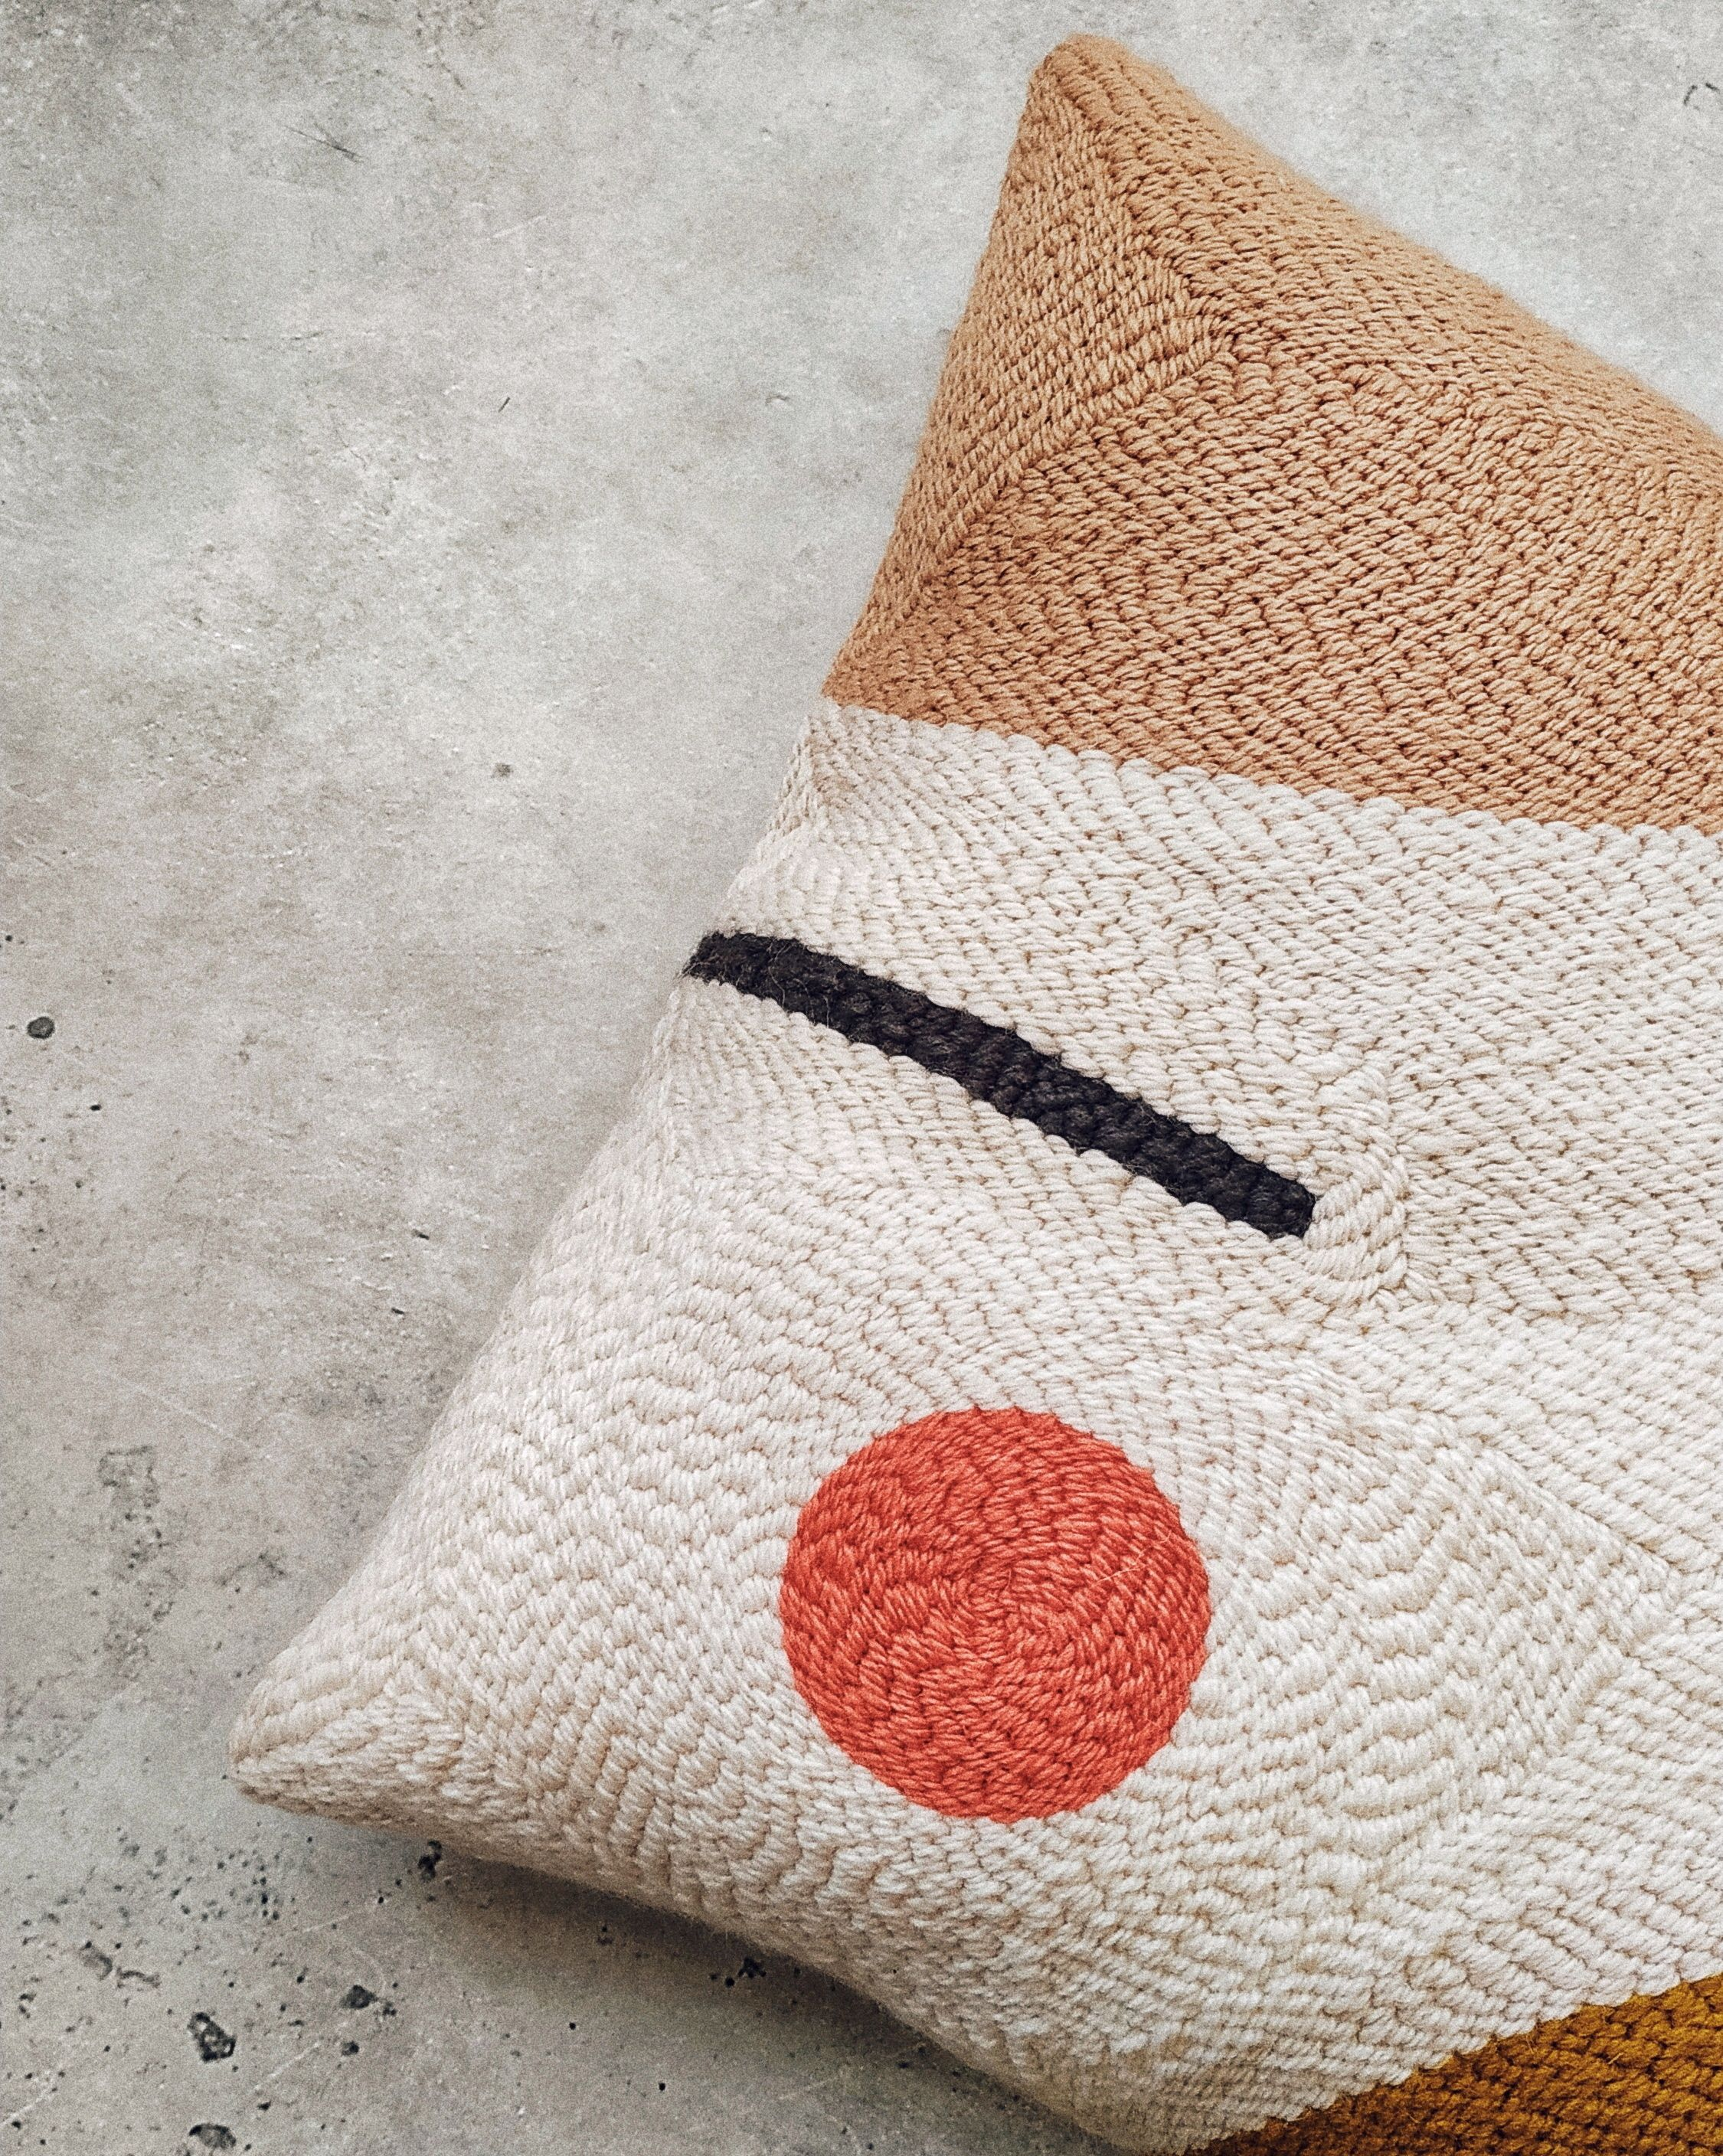 Modern abstract punchneedle pillowcase · Beige, mustard and coral accent pillow · Minimalistic decor